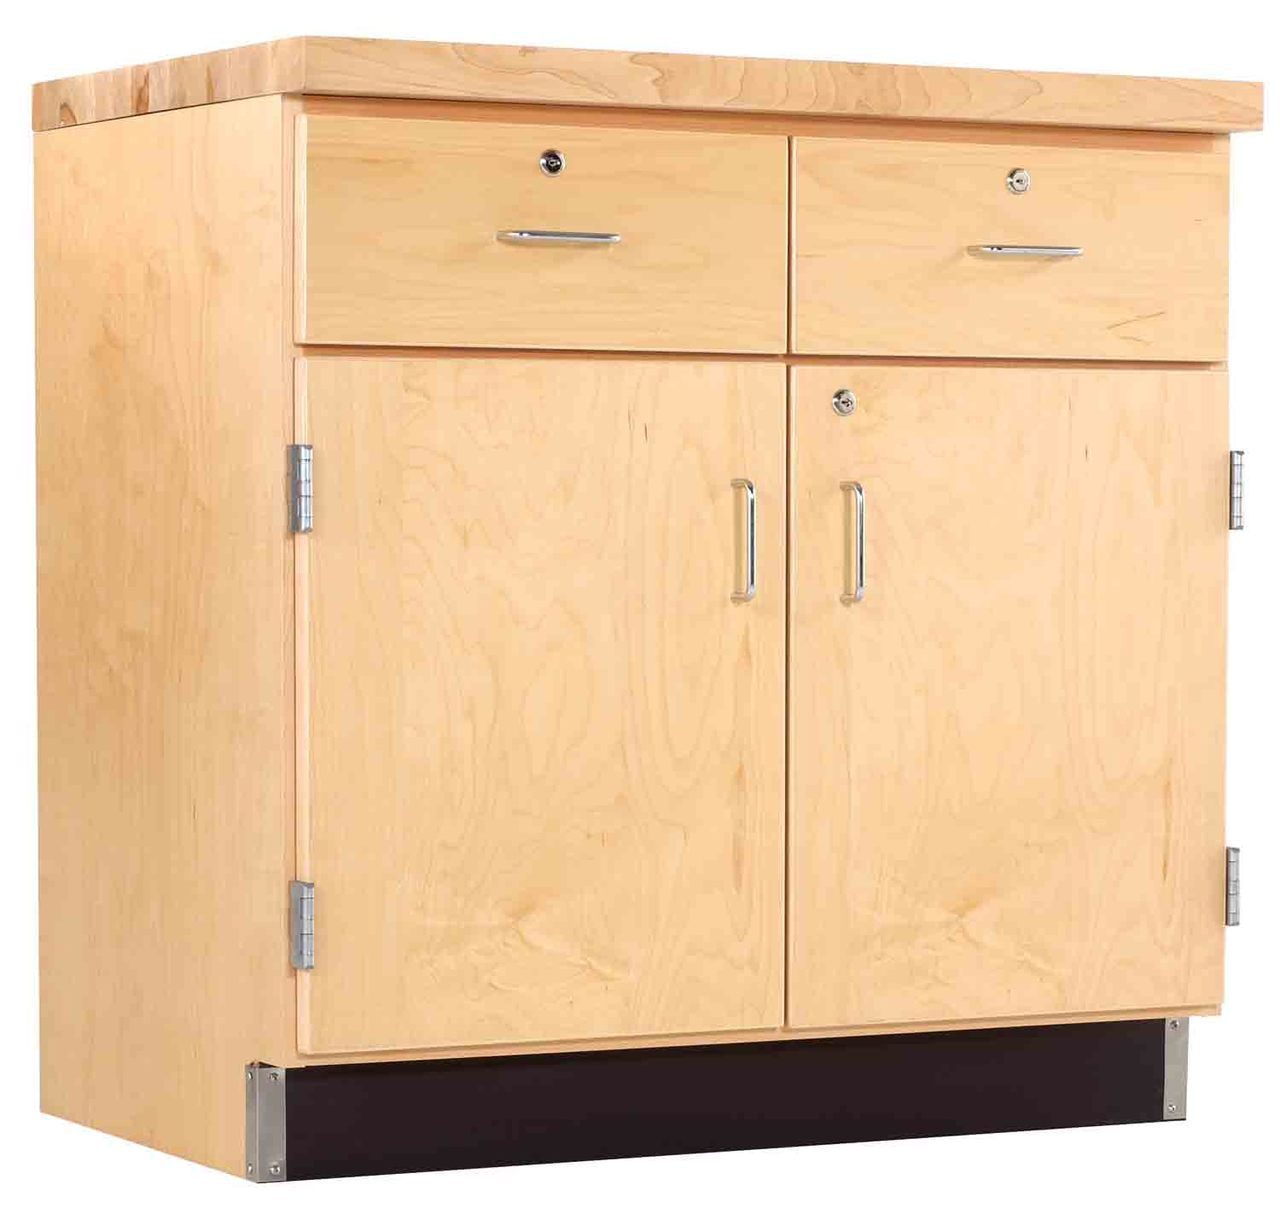 Base cabinets the best way to store your stuff home for Best way furniture store